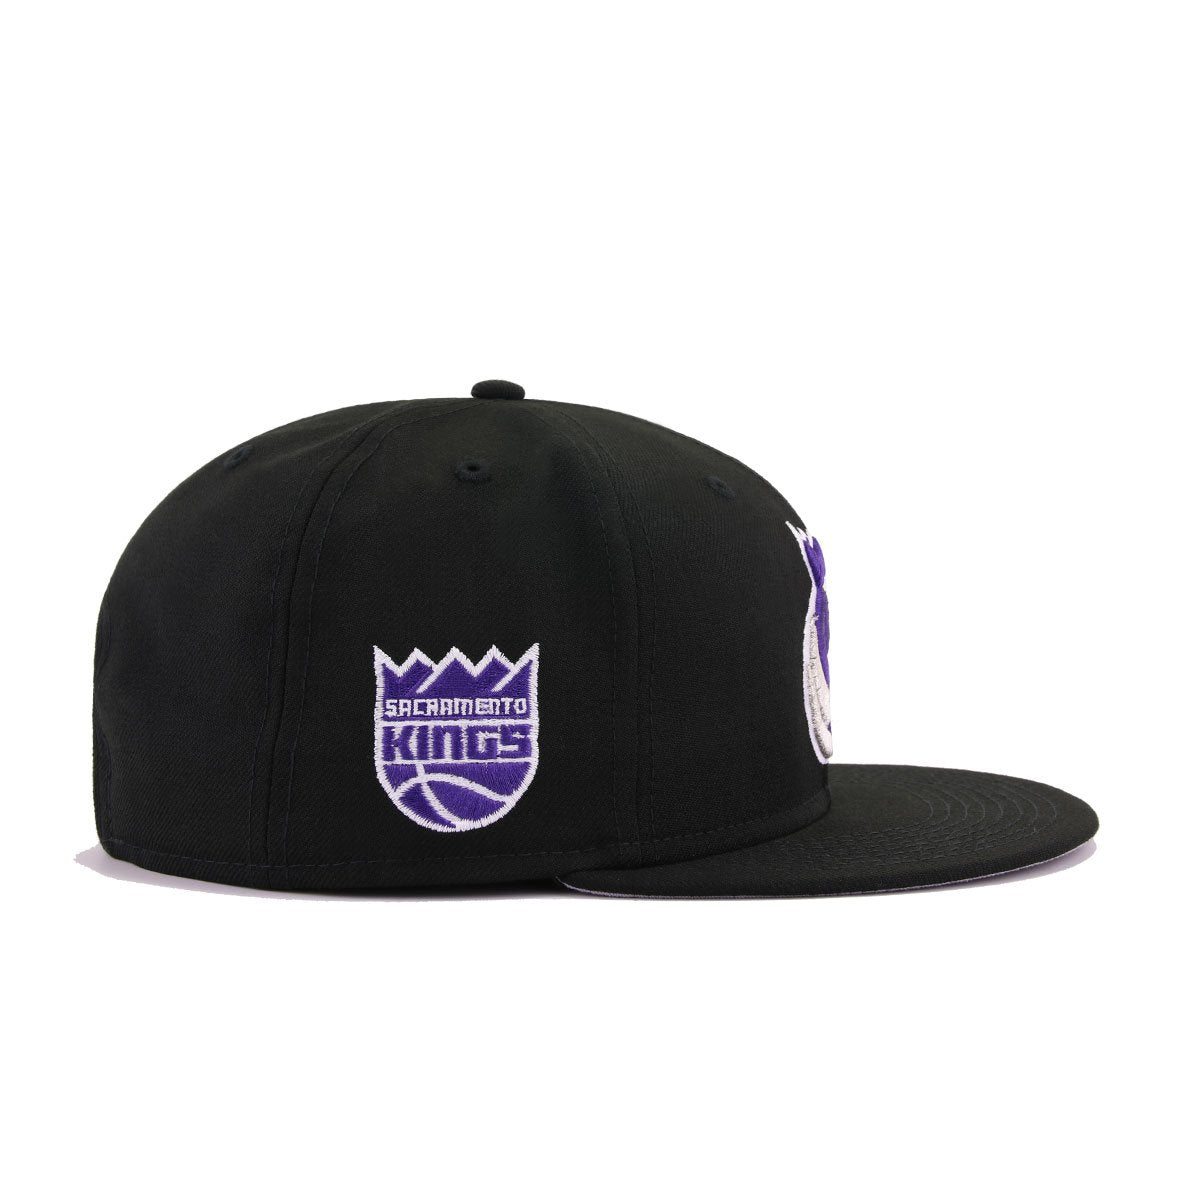 Sacramento Kings Black Alternate New Era 9Fifty Snapback